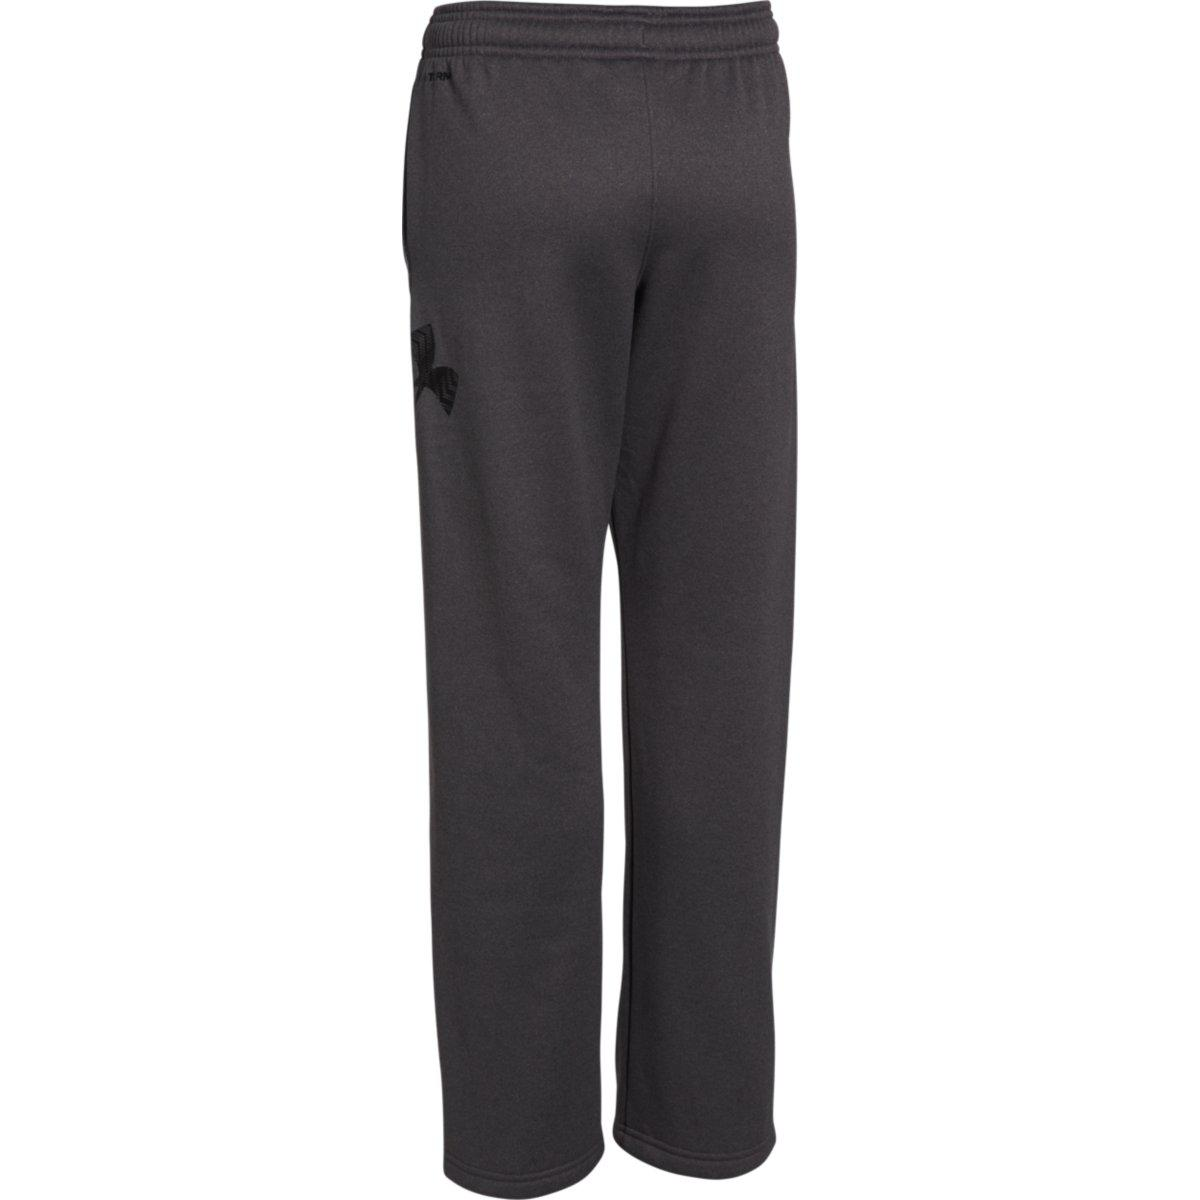 dd1e4c1309c Under Armour Boys Armour Fleece Sweatpants - Carbon Heather - Tennisnuts.com